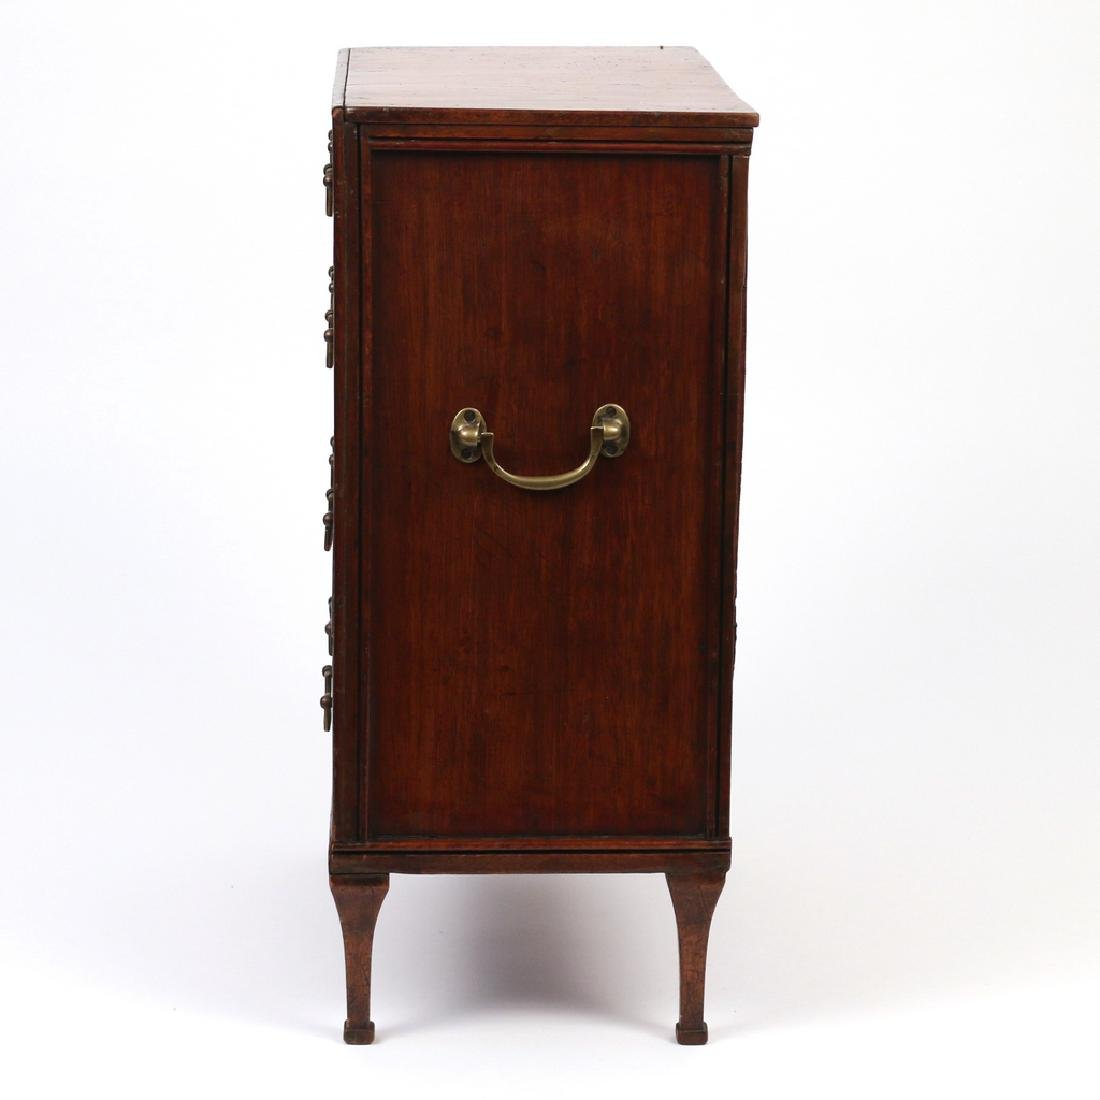 FRENCH DIRECTOIRE MINIATURE CHEST OF DRAWERS - 3